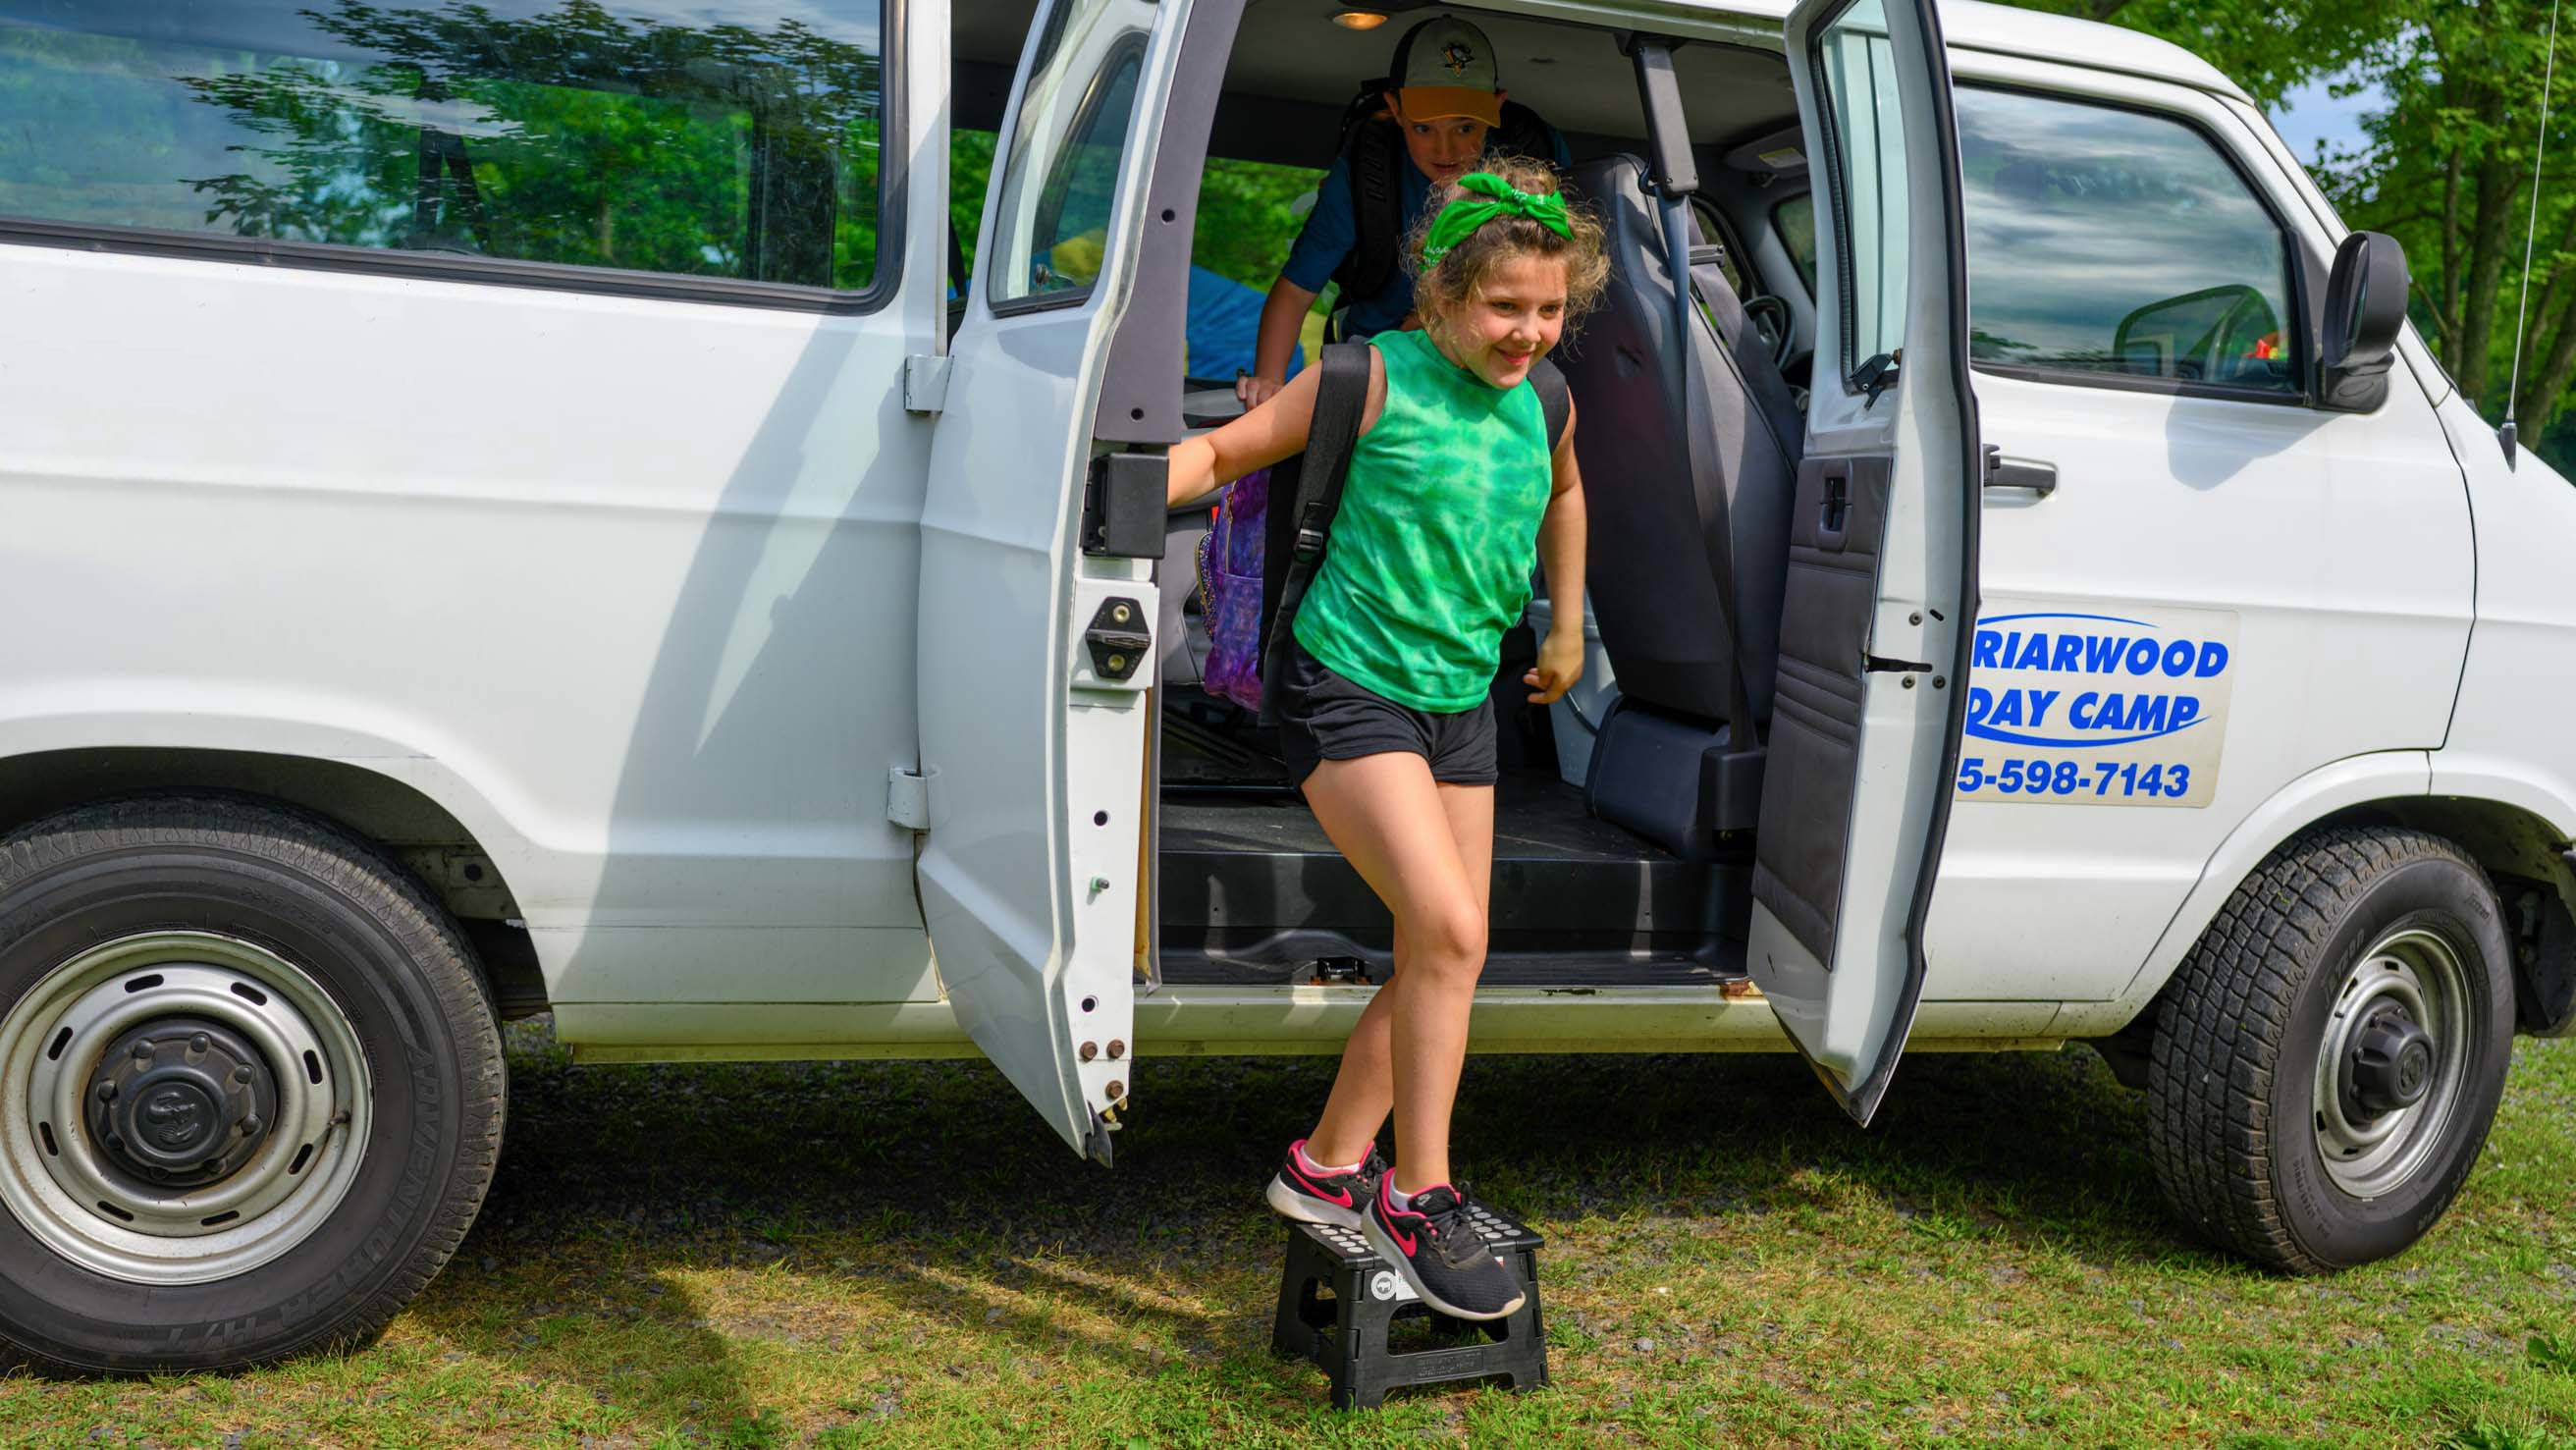 Girl getting out of camp van